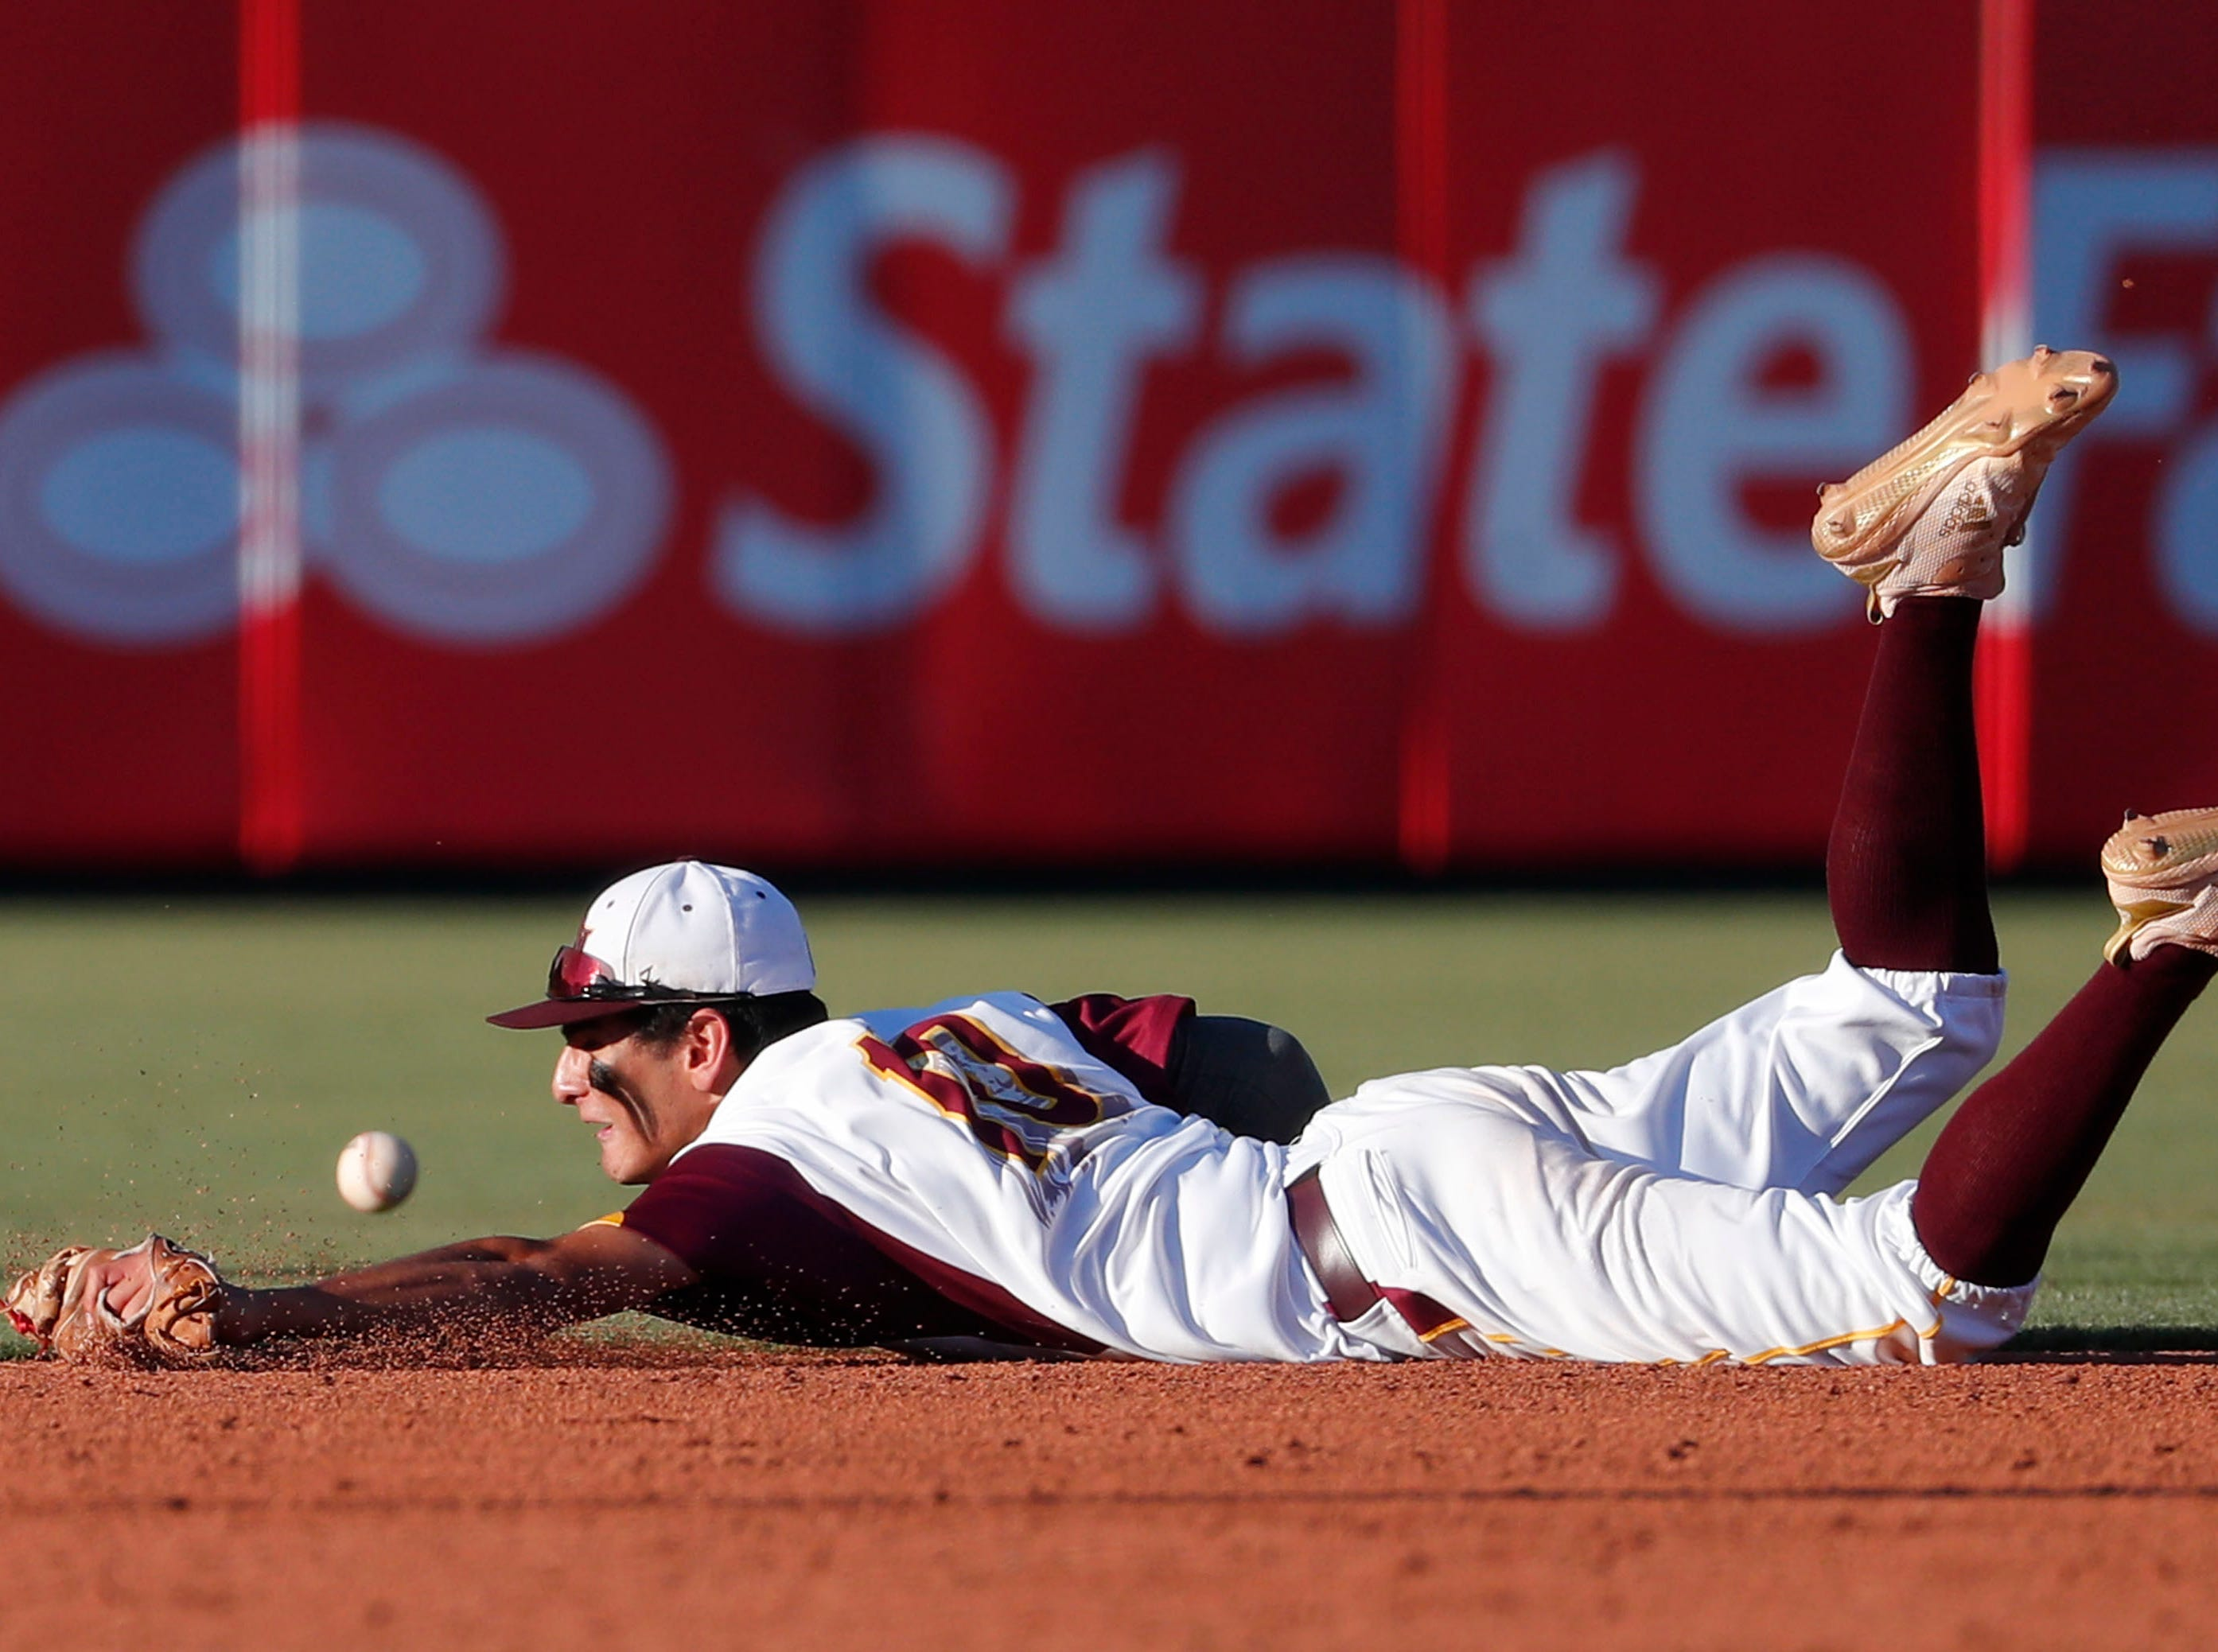 Nogales shortstop Jorge Bojorquez (10) dives for a base hit by Horizon during the 5A State Baseball Championship in Tempe, Ariz. May 14, 2019.